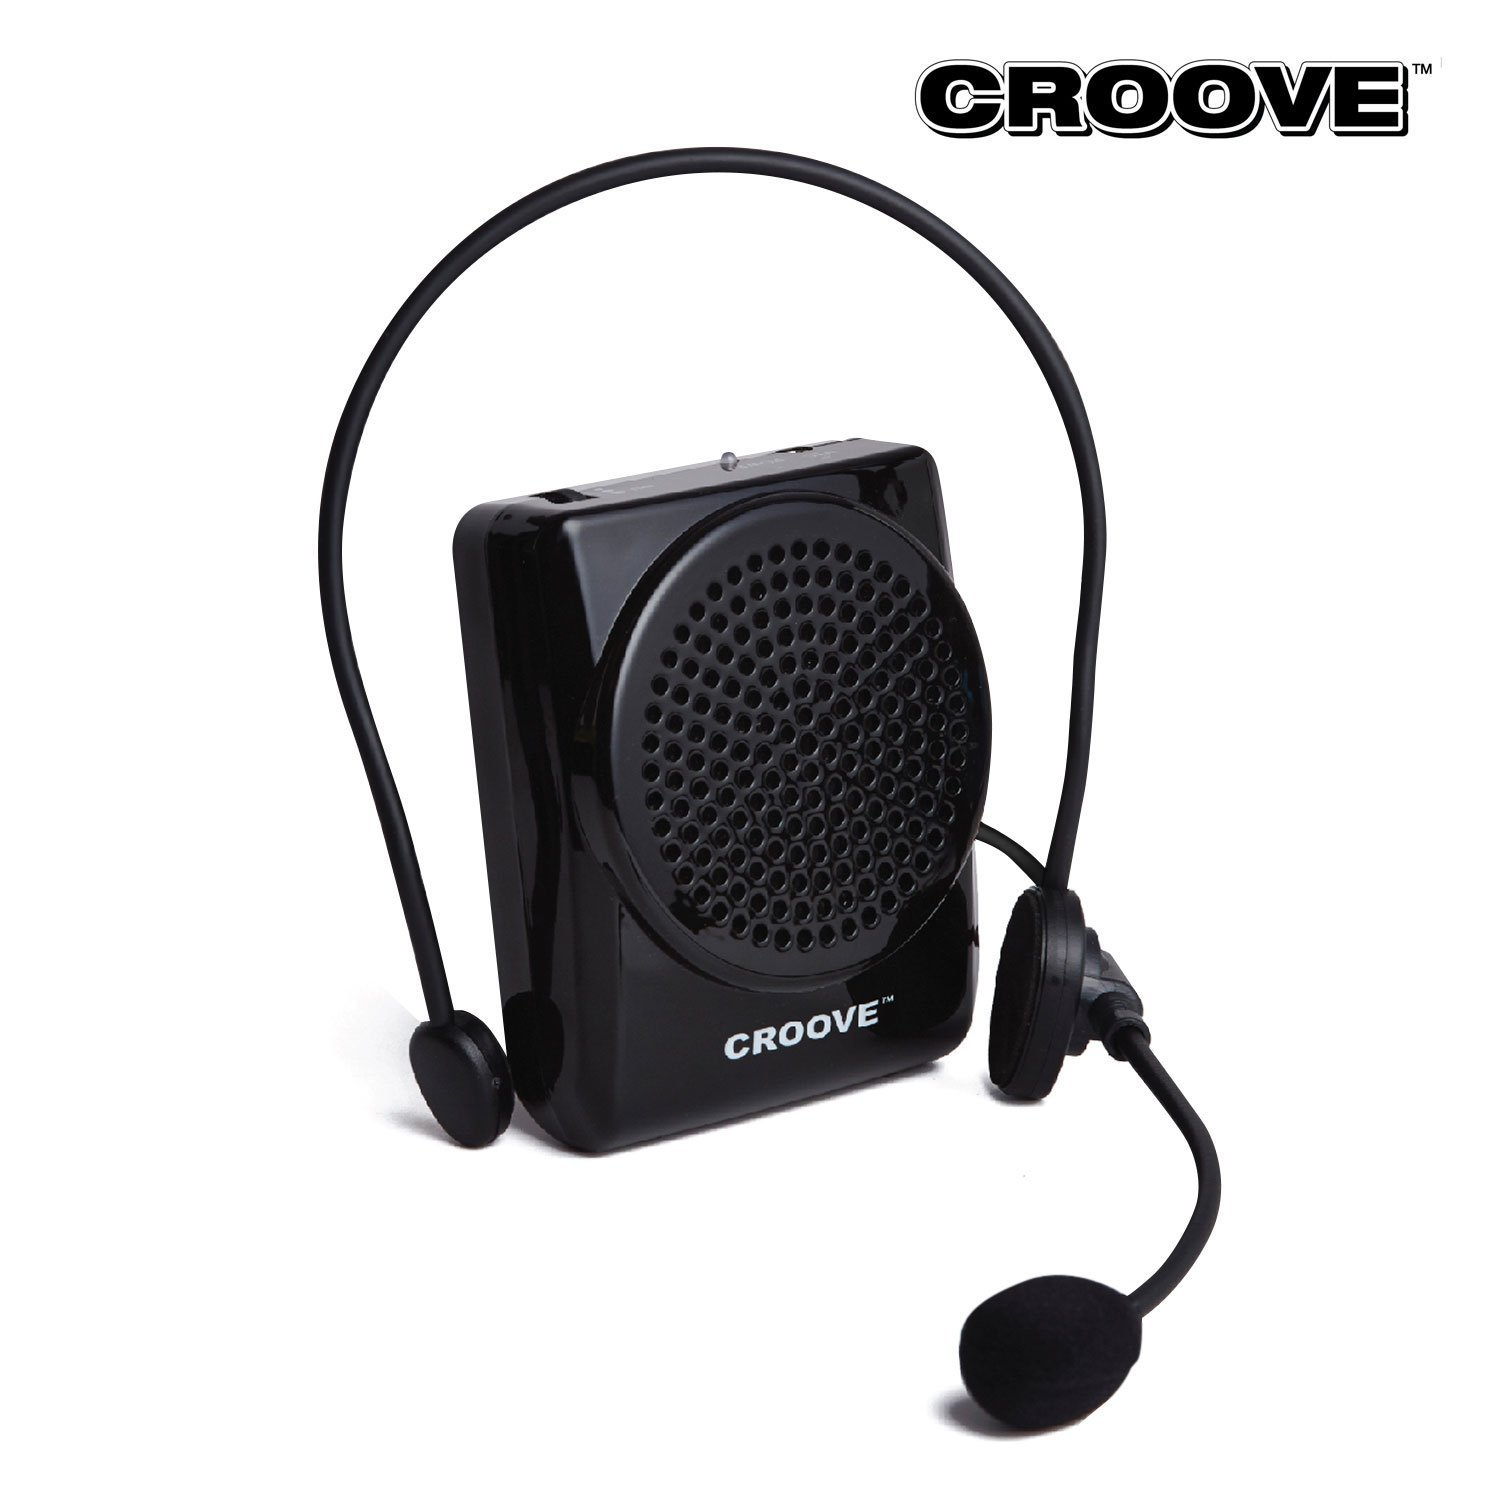 Croove Rechargeable Voice Amplifier